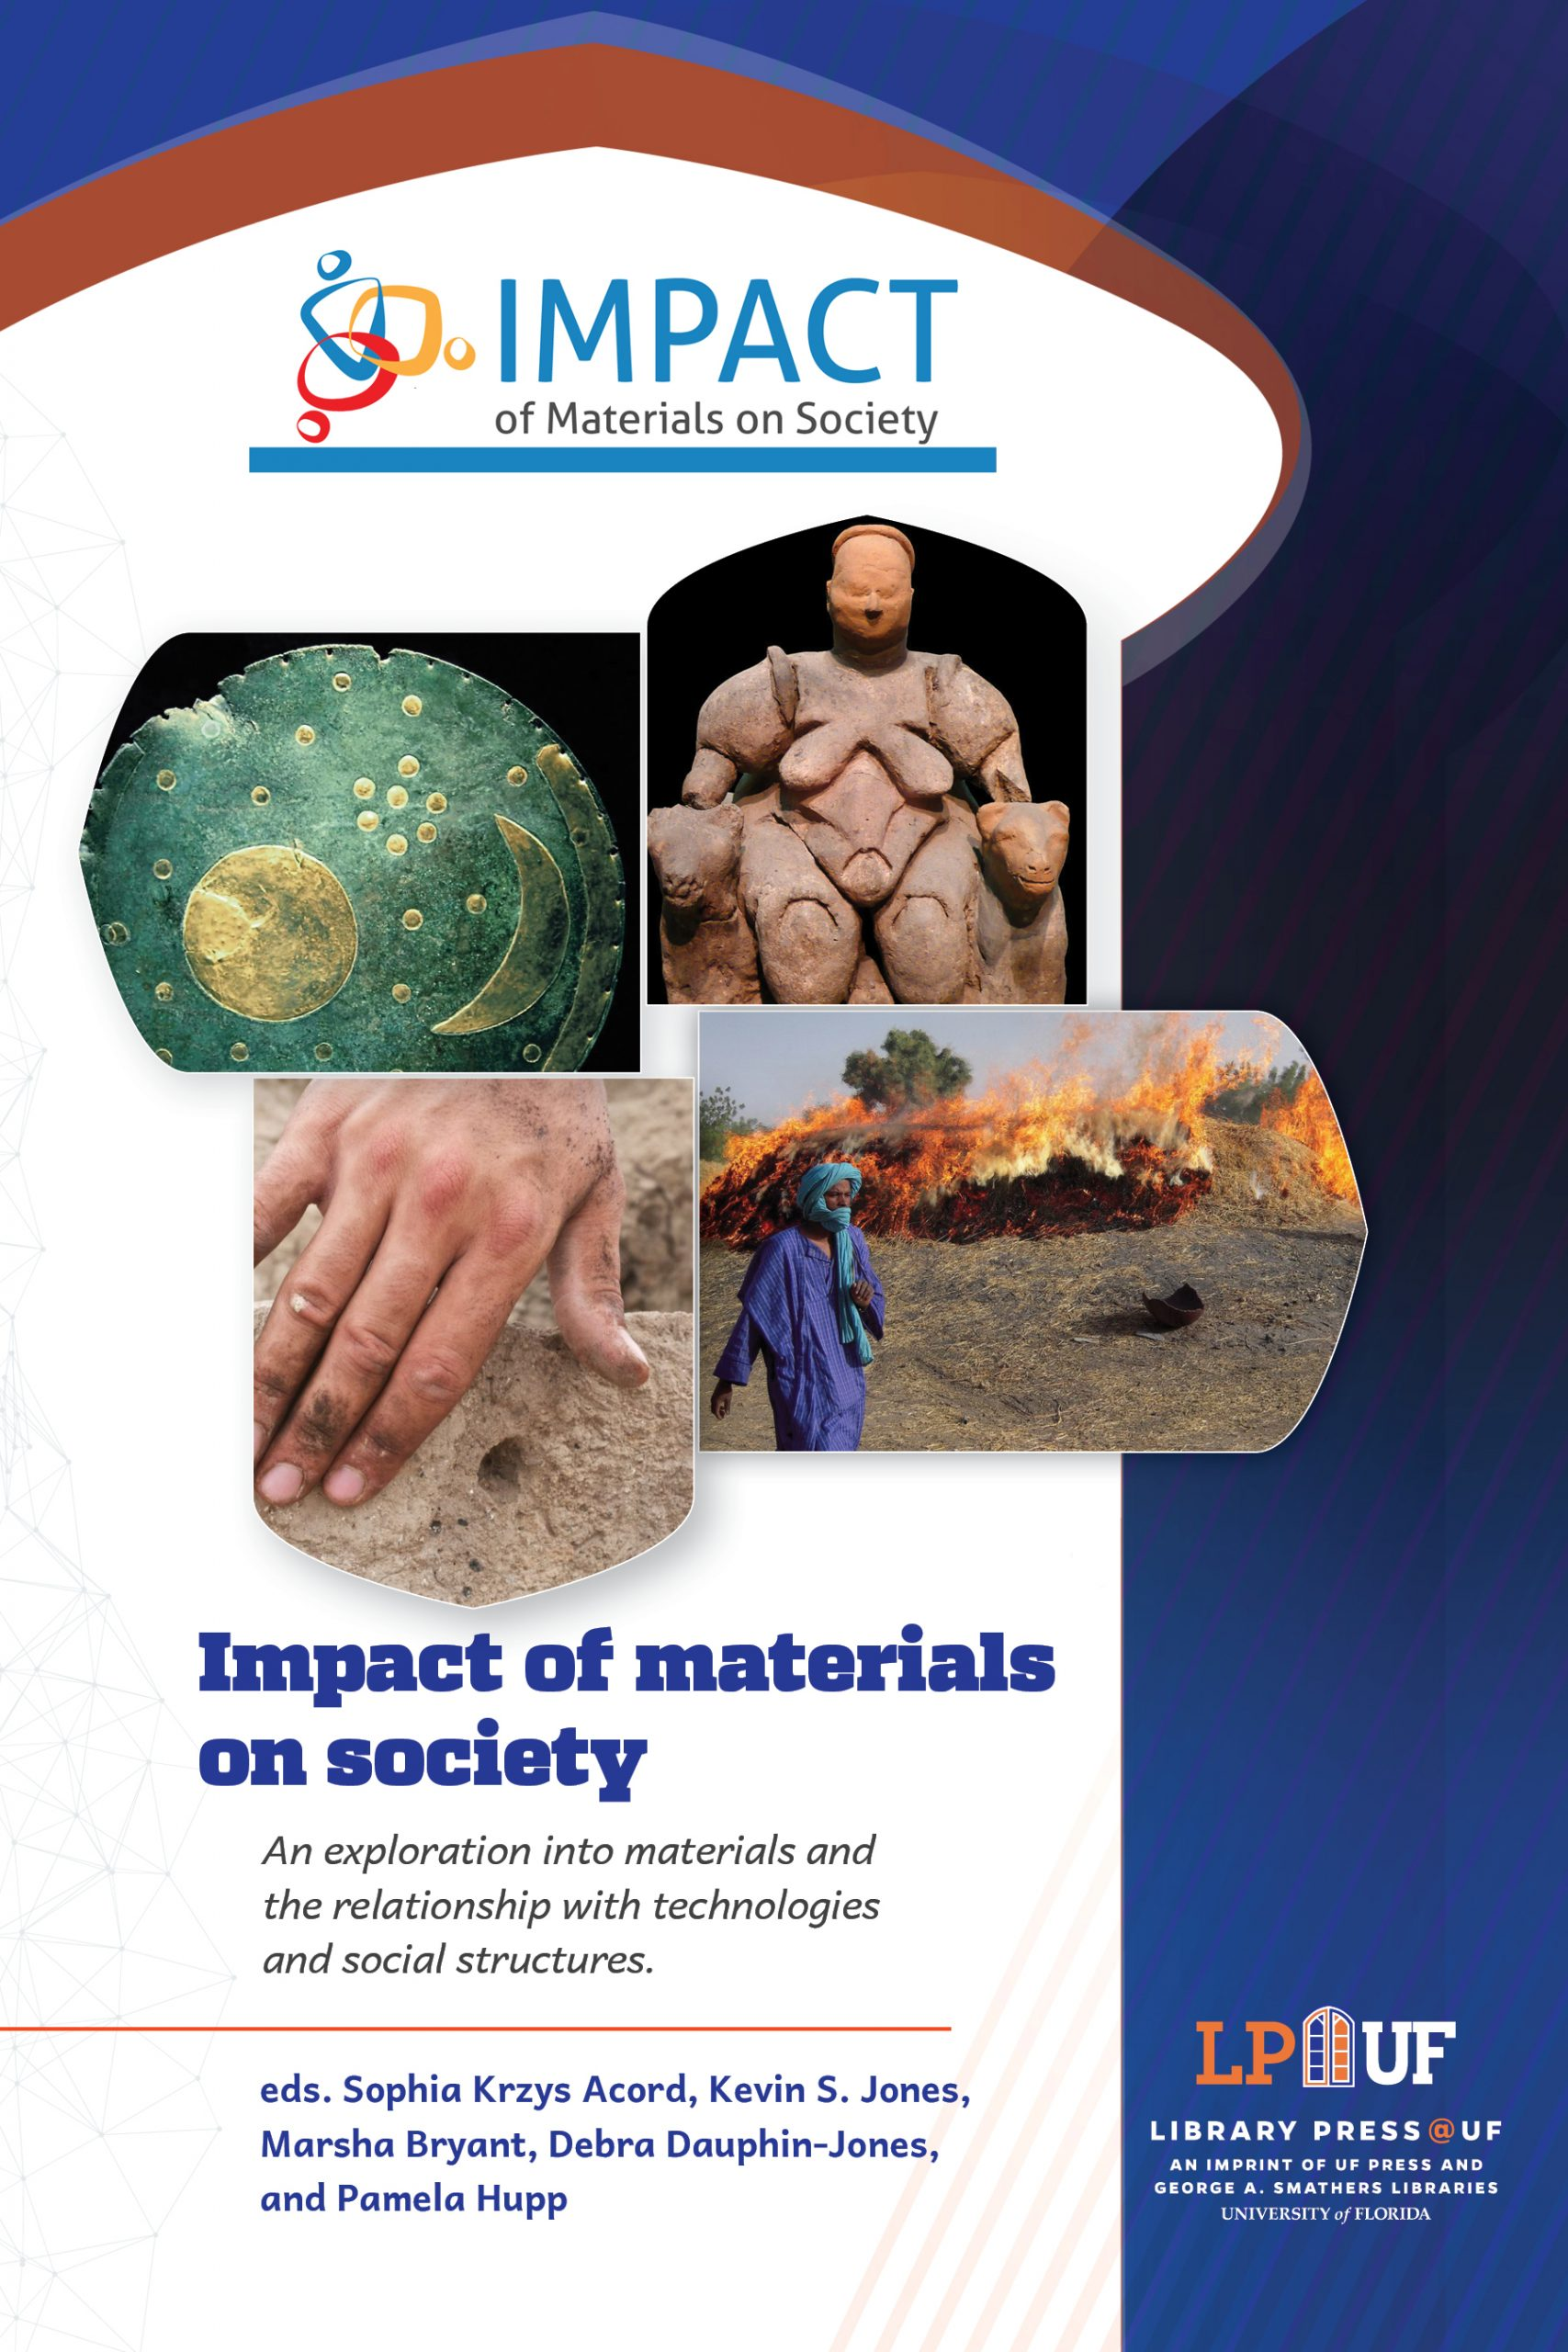 Textbook cover with images from the book